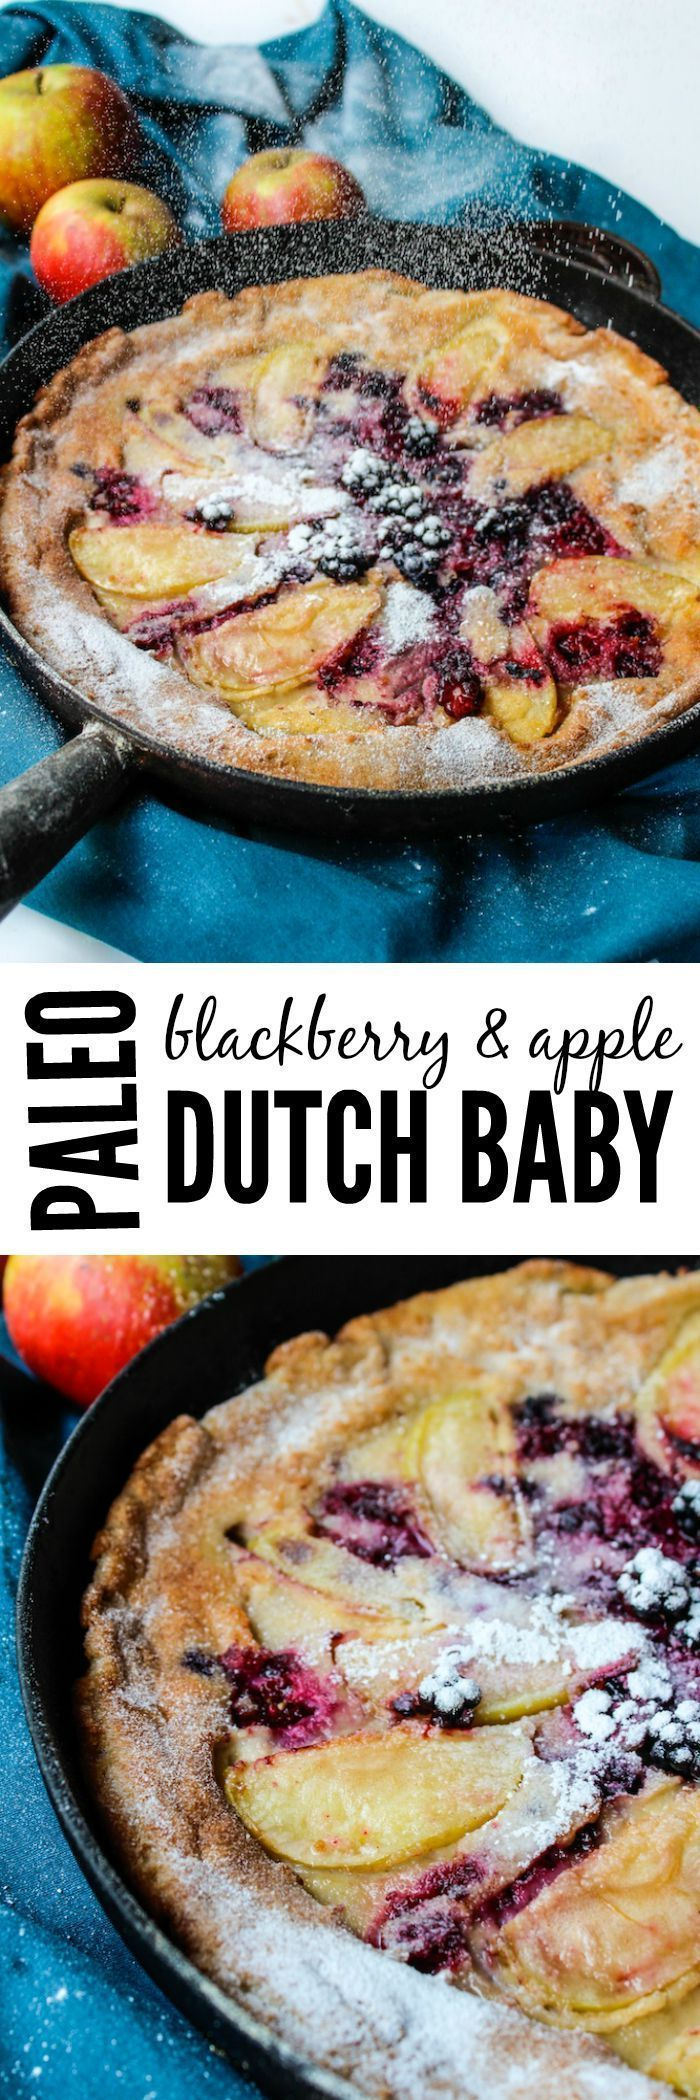 Blackberry & Apple Paleo Dutch Baby | A decadent breakfast recipe that is surprisingly healthy! All clean eating ingredients are used for this Dutch baby recipe. Pin now to make this healthy breakfast later!